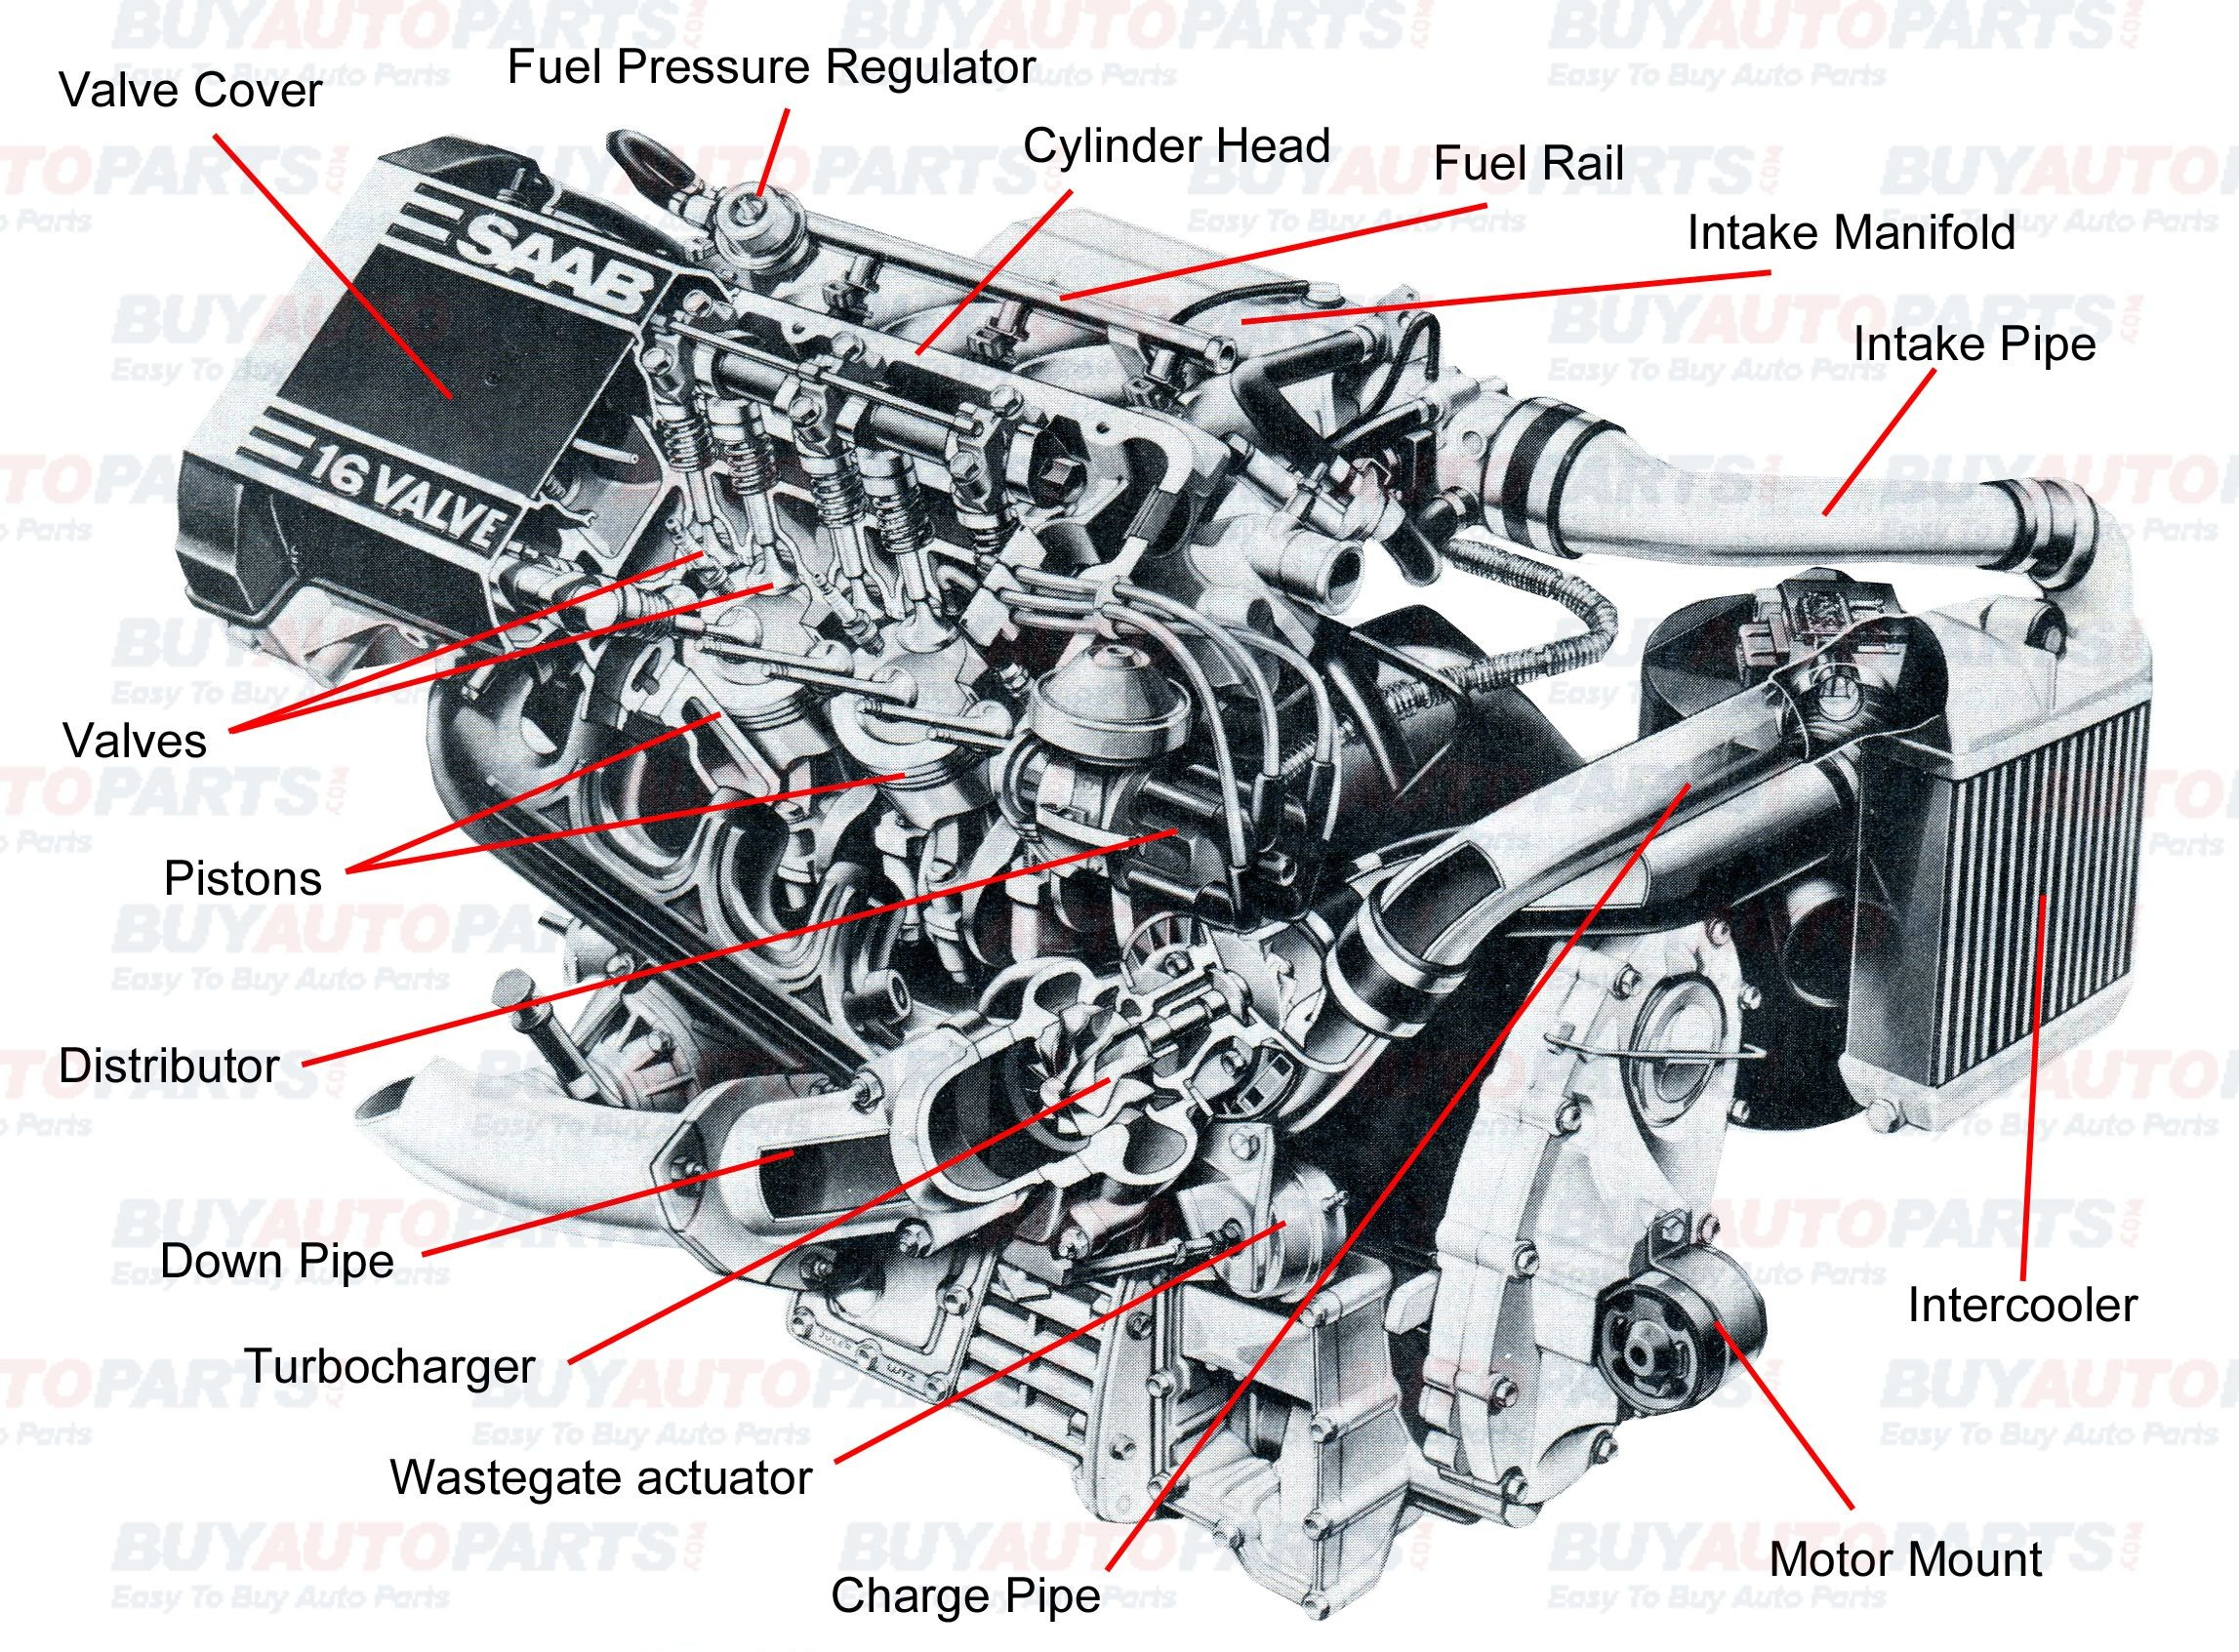 Engine Components Diagram All Internal Bustion Engines Have the Same Basic Ponents the Of Engine Components Diagram